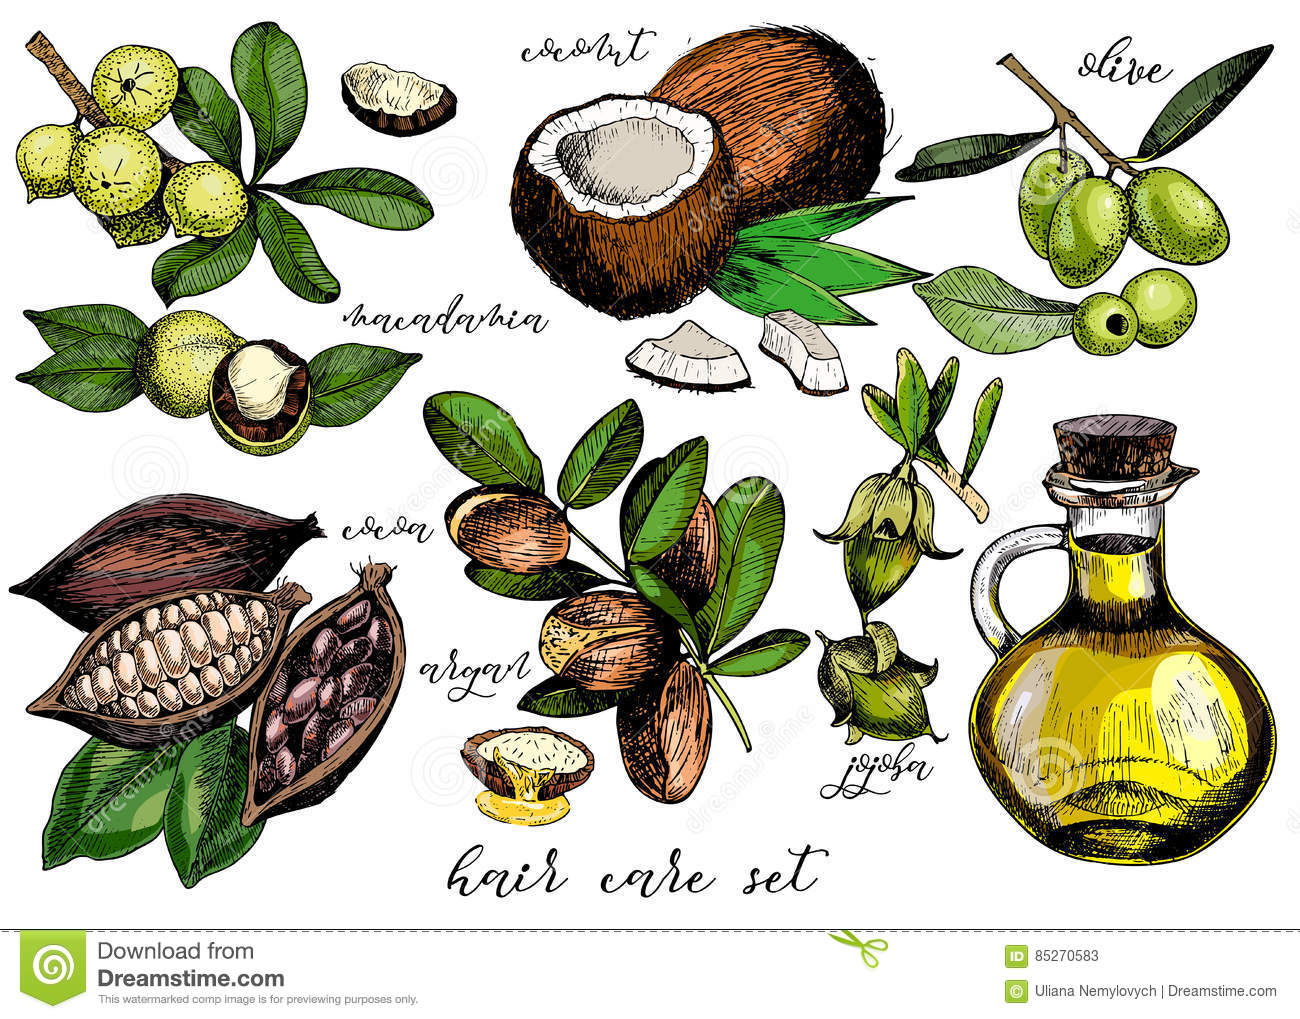 Macadamia Natural Oil Ingredients